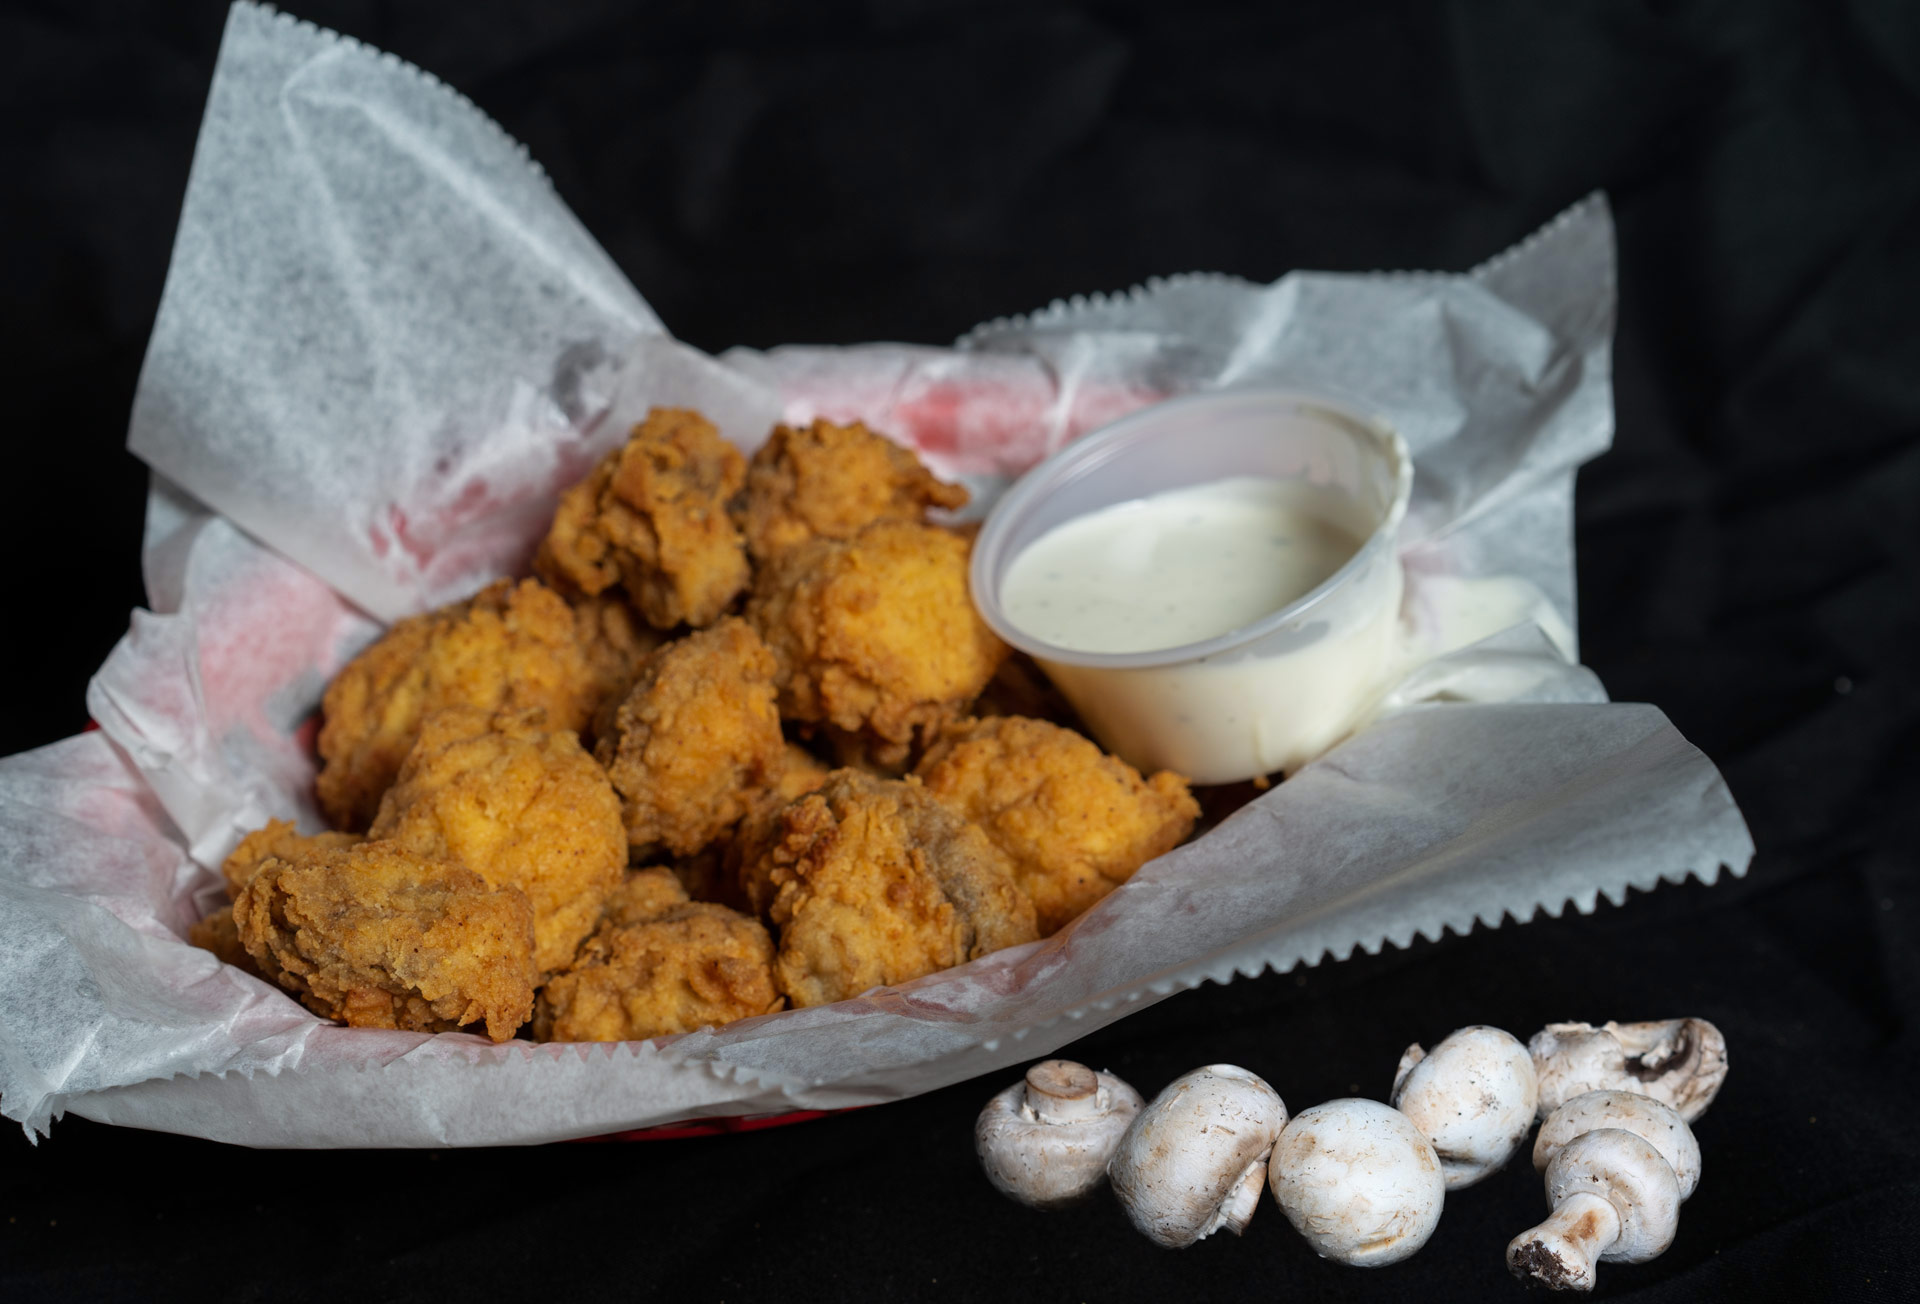 Southern Fried Mushrooms Tender hand breaded whole button mushrooms fried to a golden crisp and served with Ranch dressing. 6.00